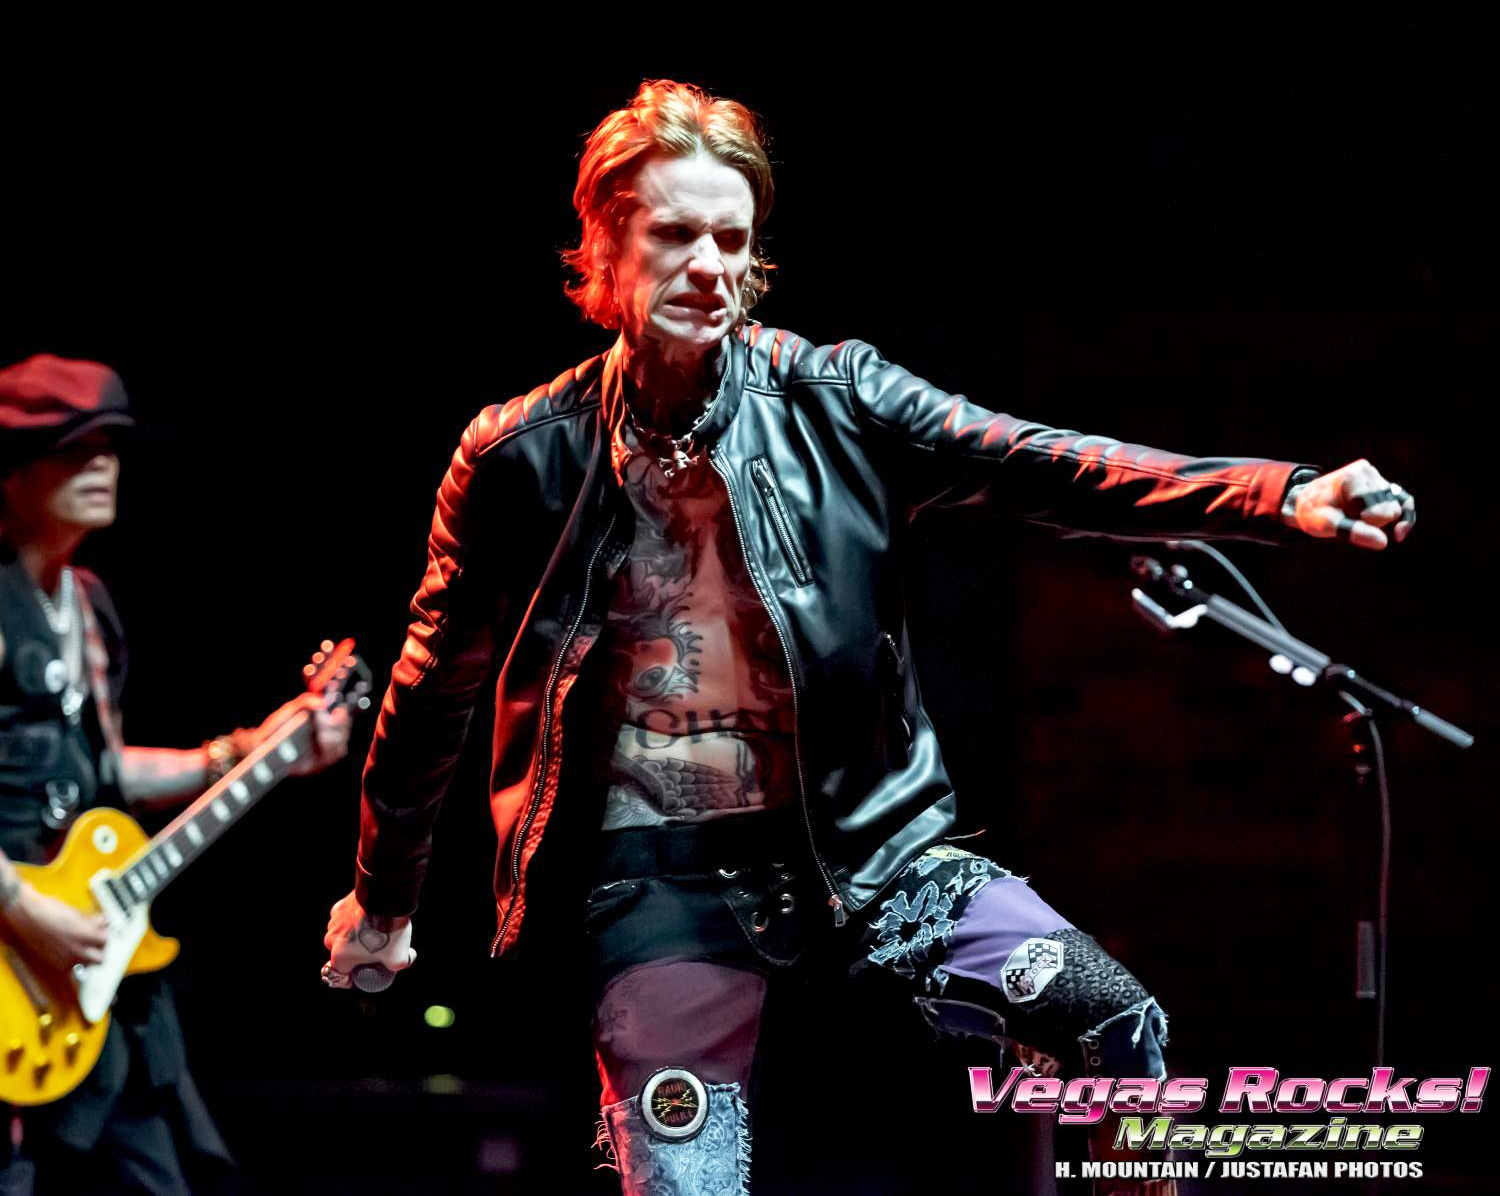 Josh Todd Rocks the stage!